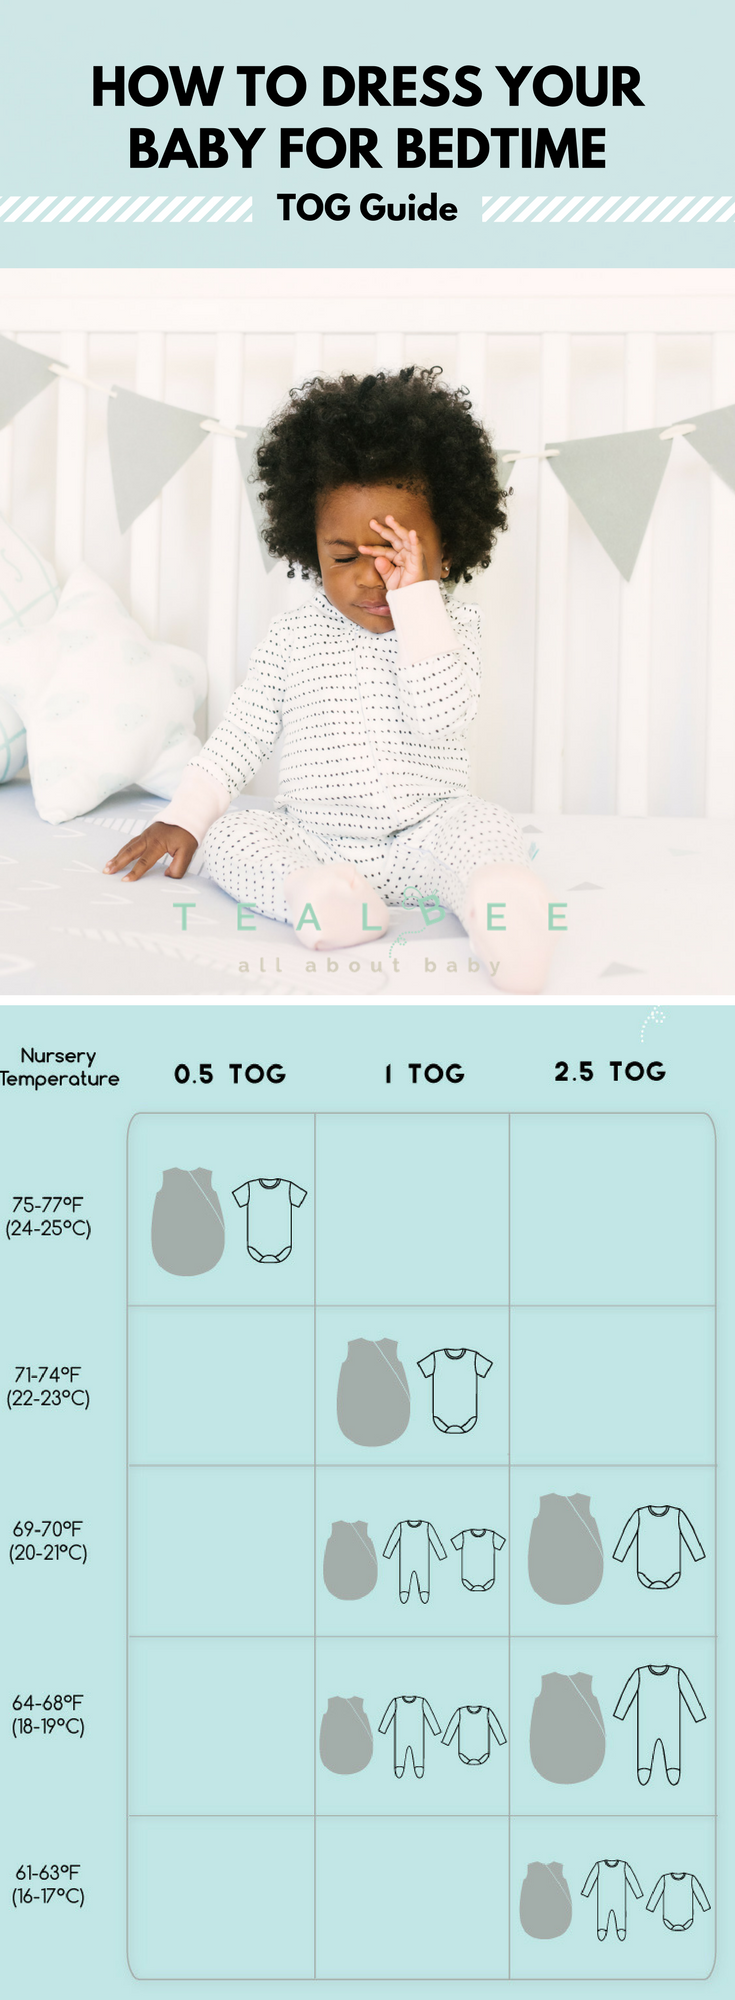 What Is Tog And What Thickness Sleeping Bag Do I Need For My Baby Baby Sleep Clothes Baby Sleeping Bag Baby Bedtime